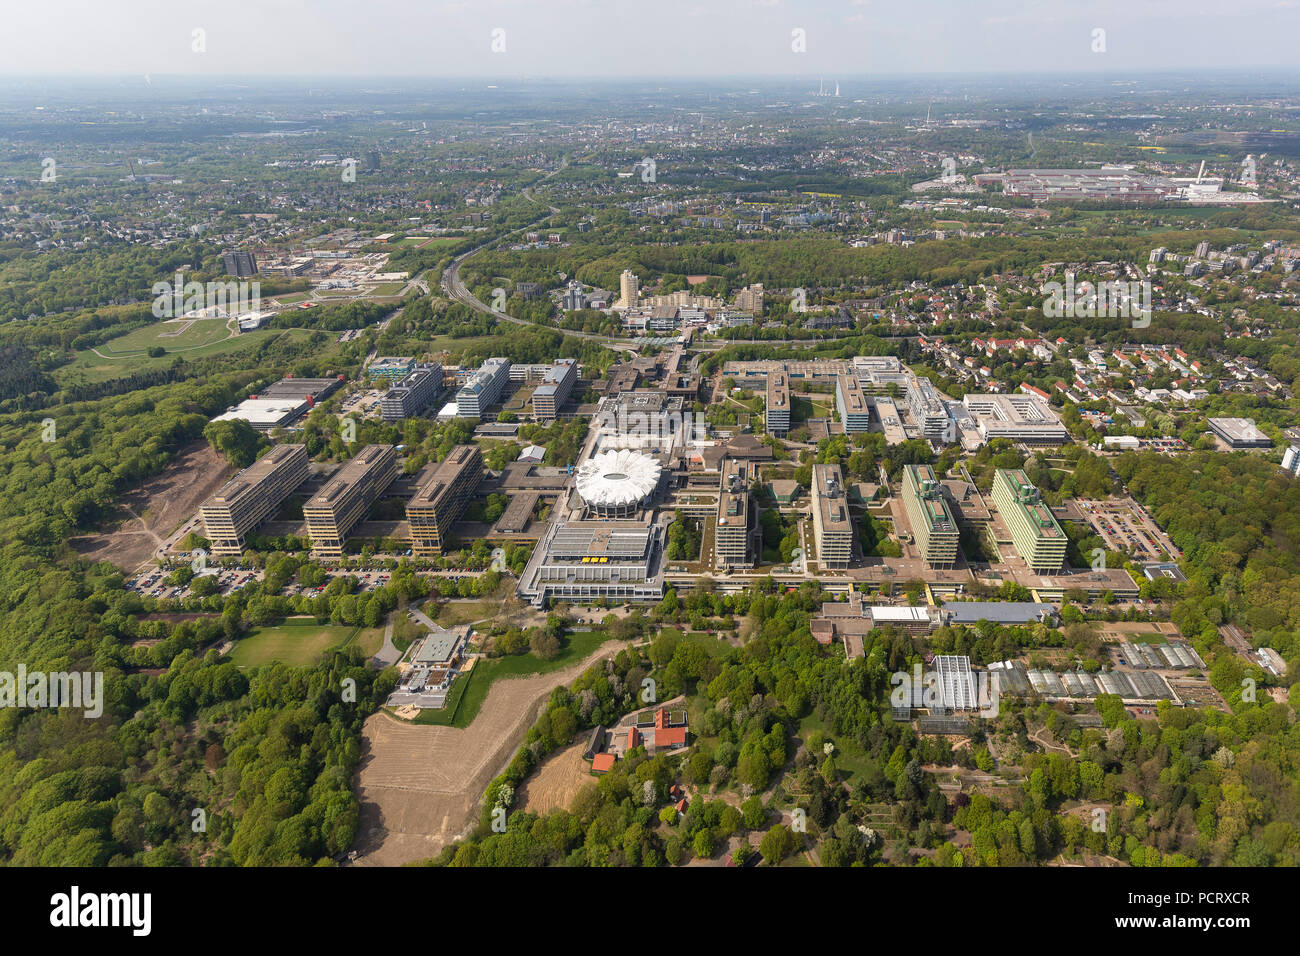 BioMedicine Center at the Ruhr University Bochum, RUB, aerial view of Bochum - Stock Image